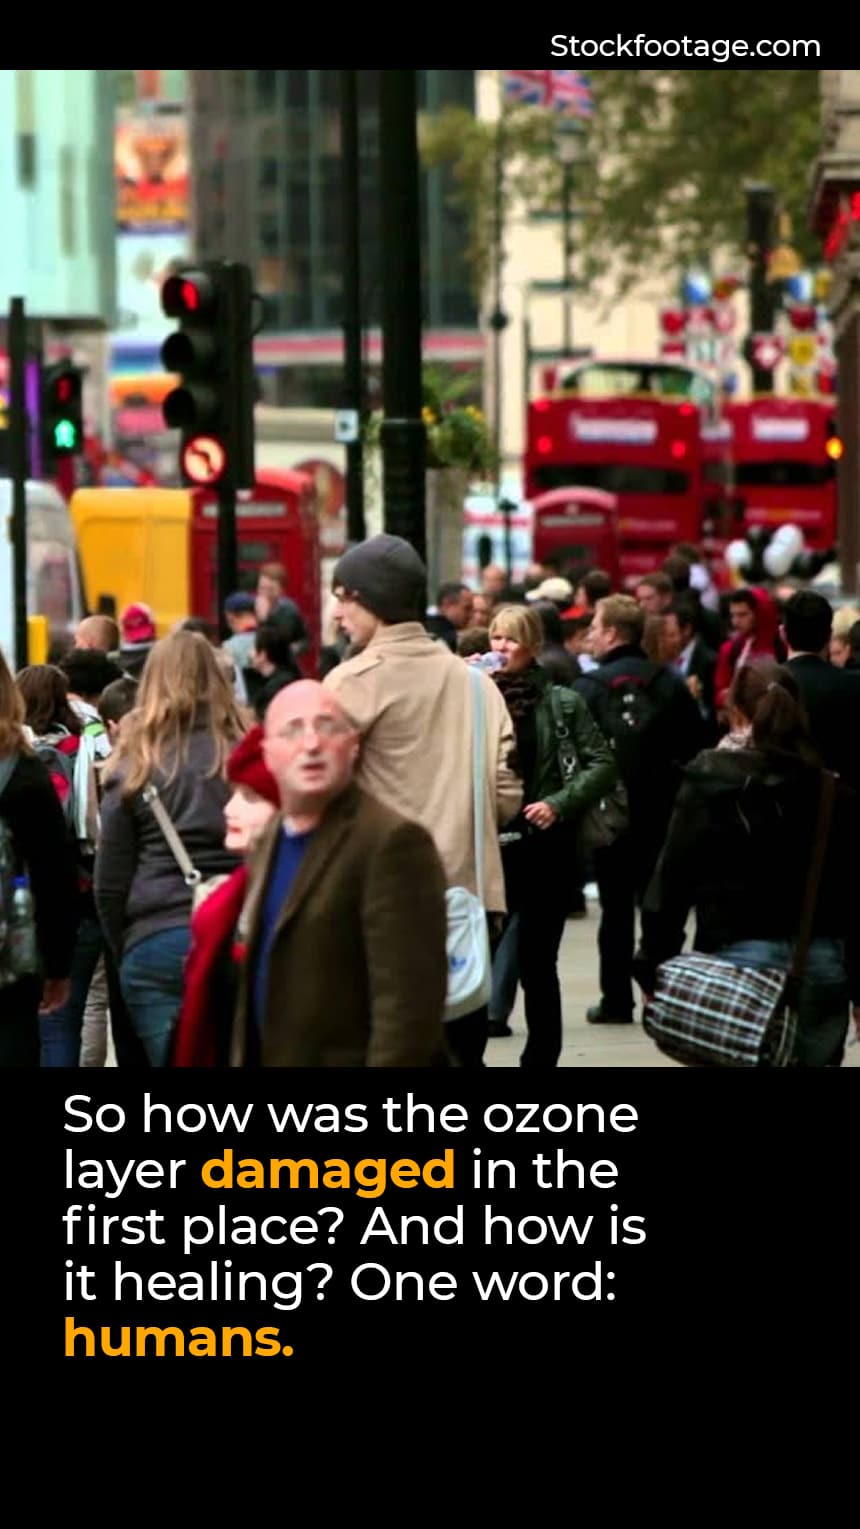 TEXT: So how was the ozone layer depleted in the first place? And how is it healing? One word: humans.  IMAGE: A crowded city street.